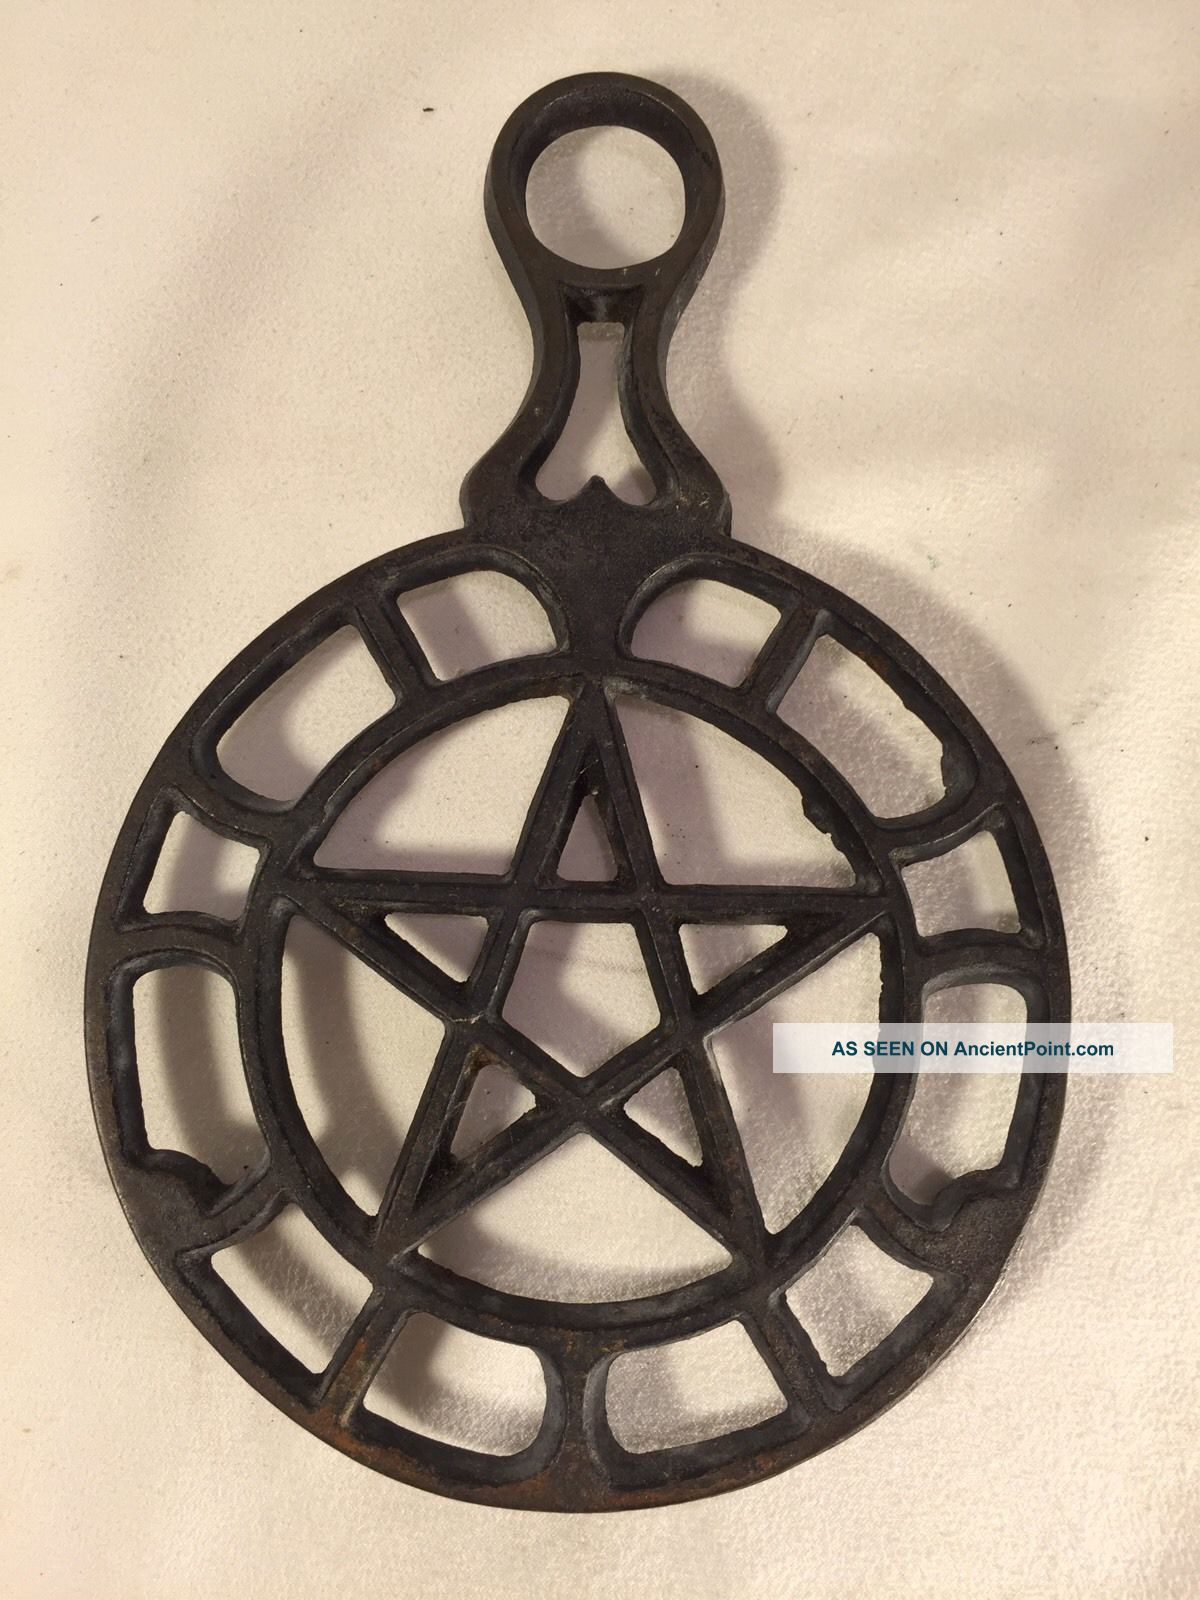 Cast Iron Trivet Wall Hanging Vintage Star Pentagram Heart Footed Trivets photo